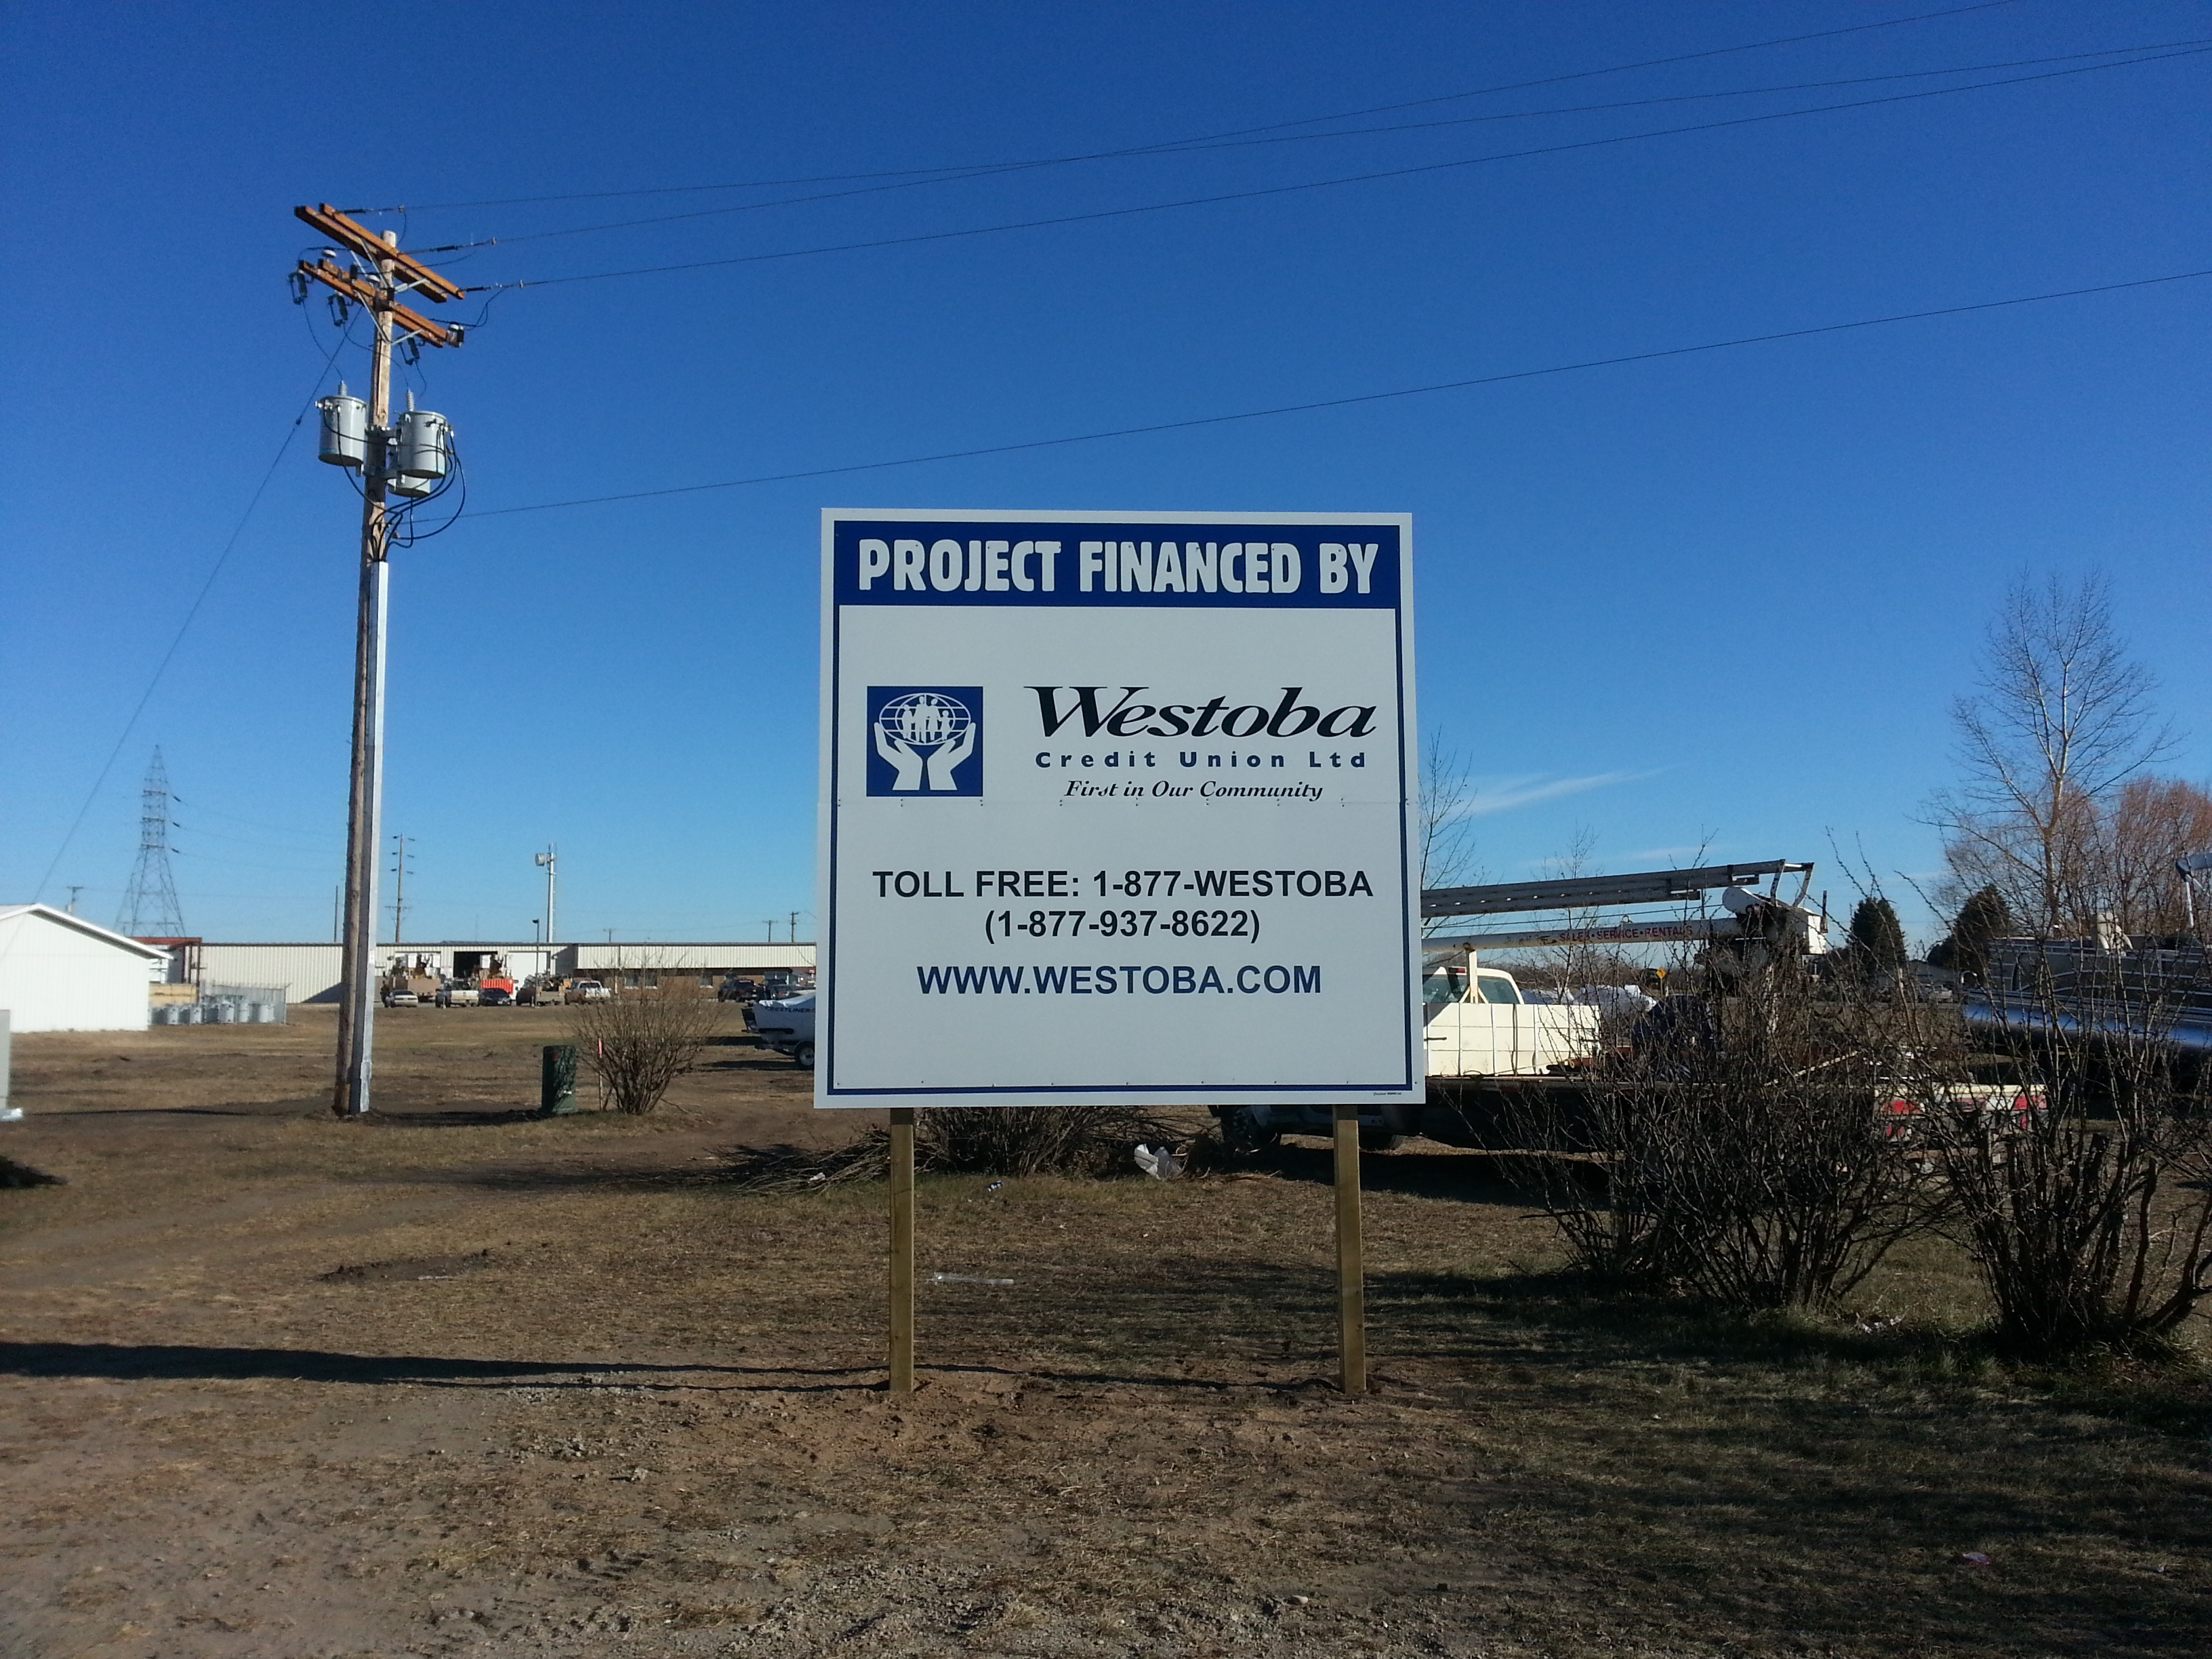 westoba credit union site sign